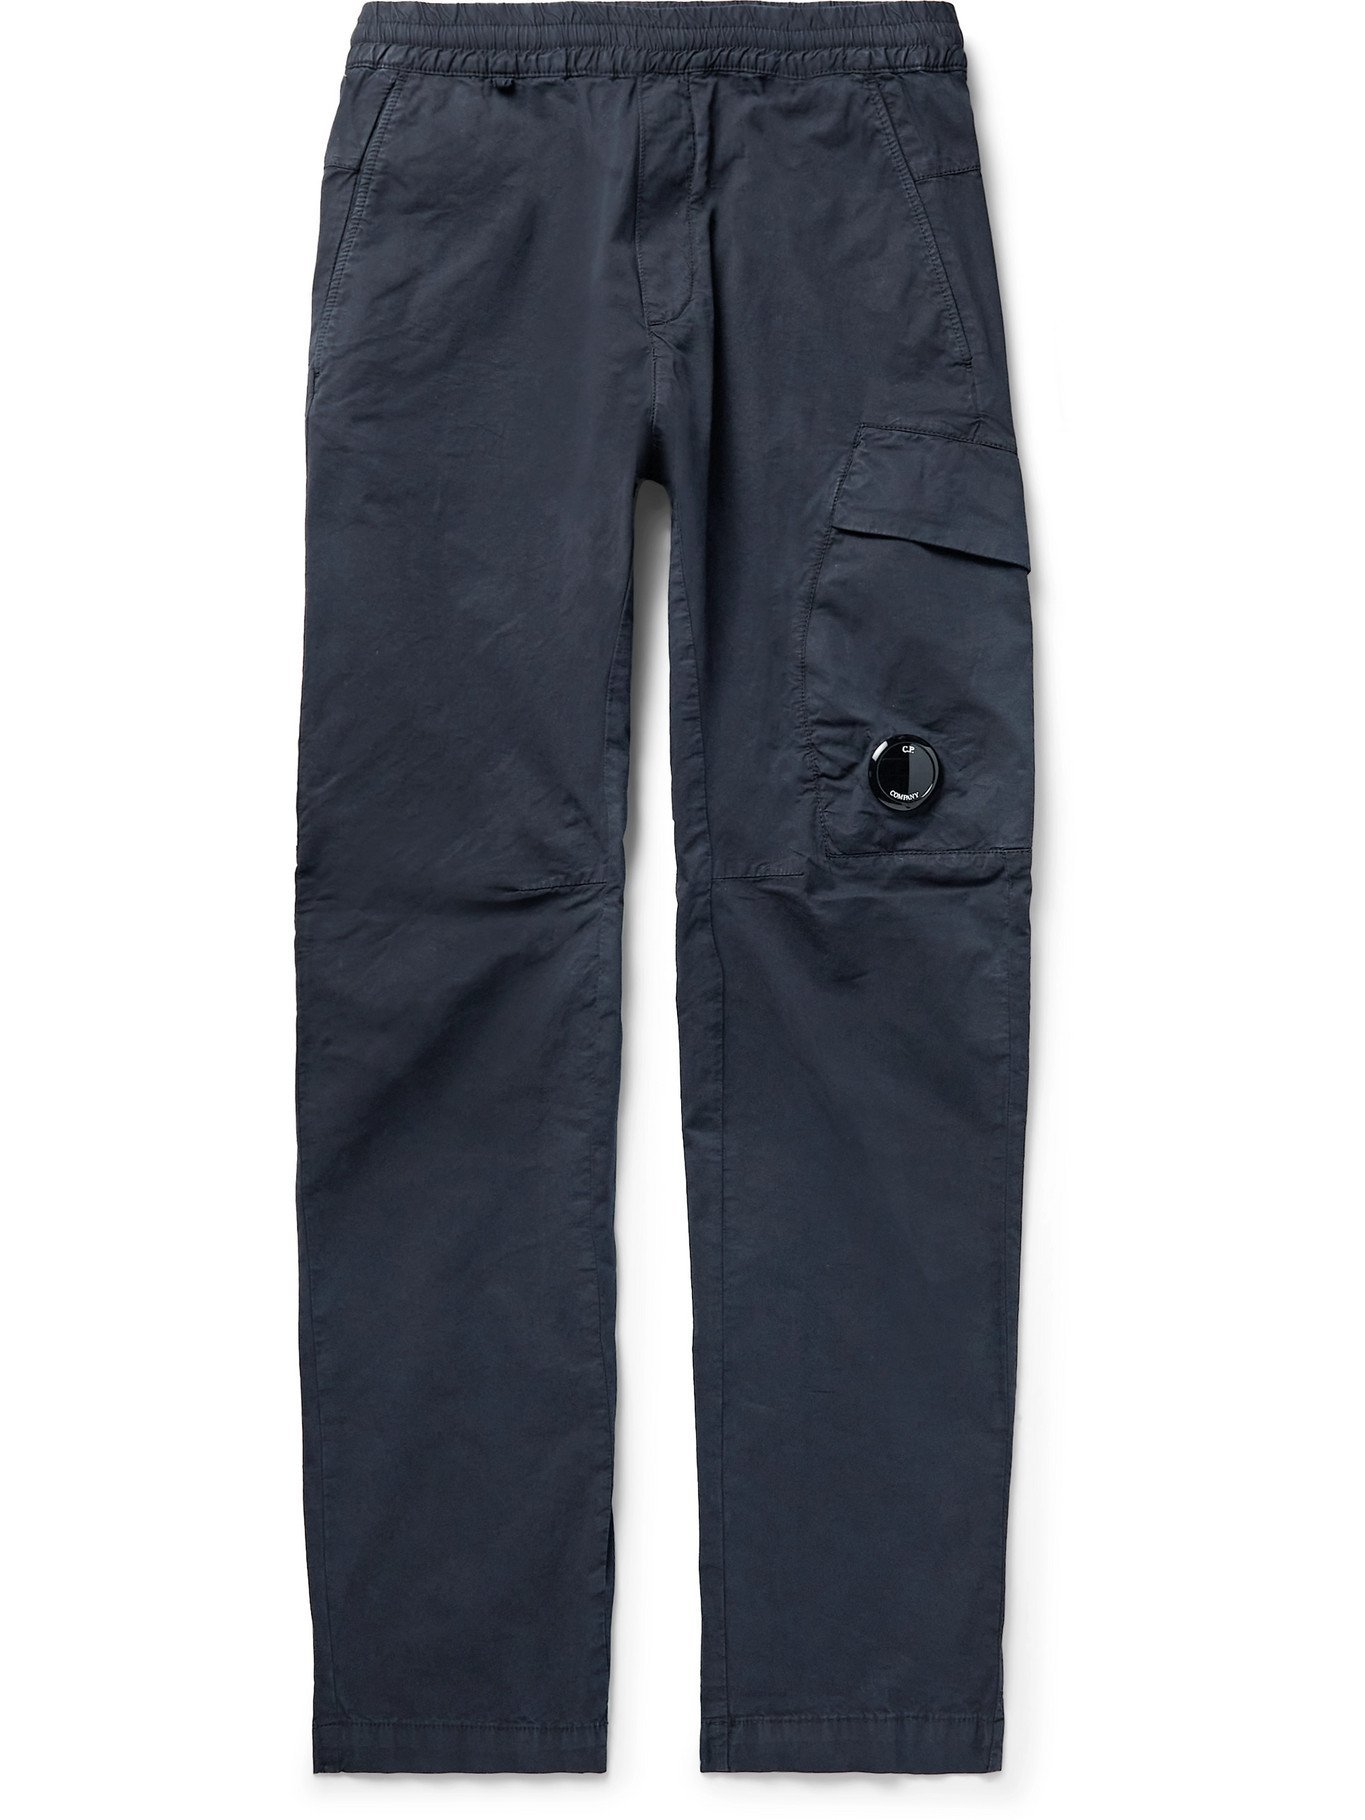 C.P. COMPANY - Garment-Dyed Logo-Appliquéd Stretch-Cotton Cargo Trousers - Blue - IT 46